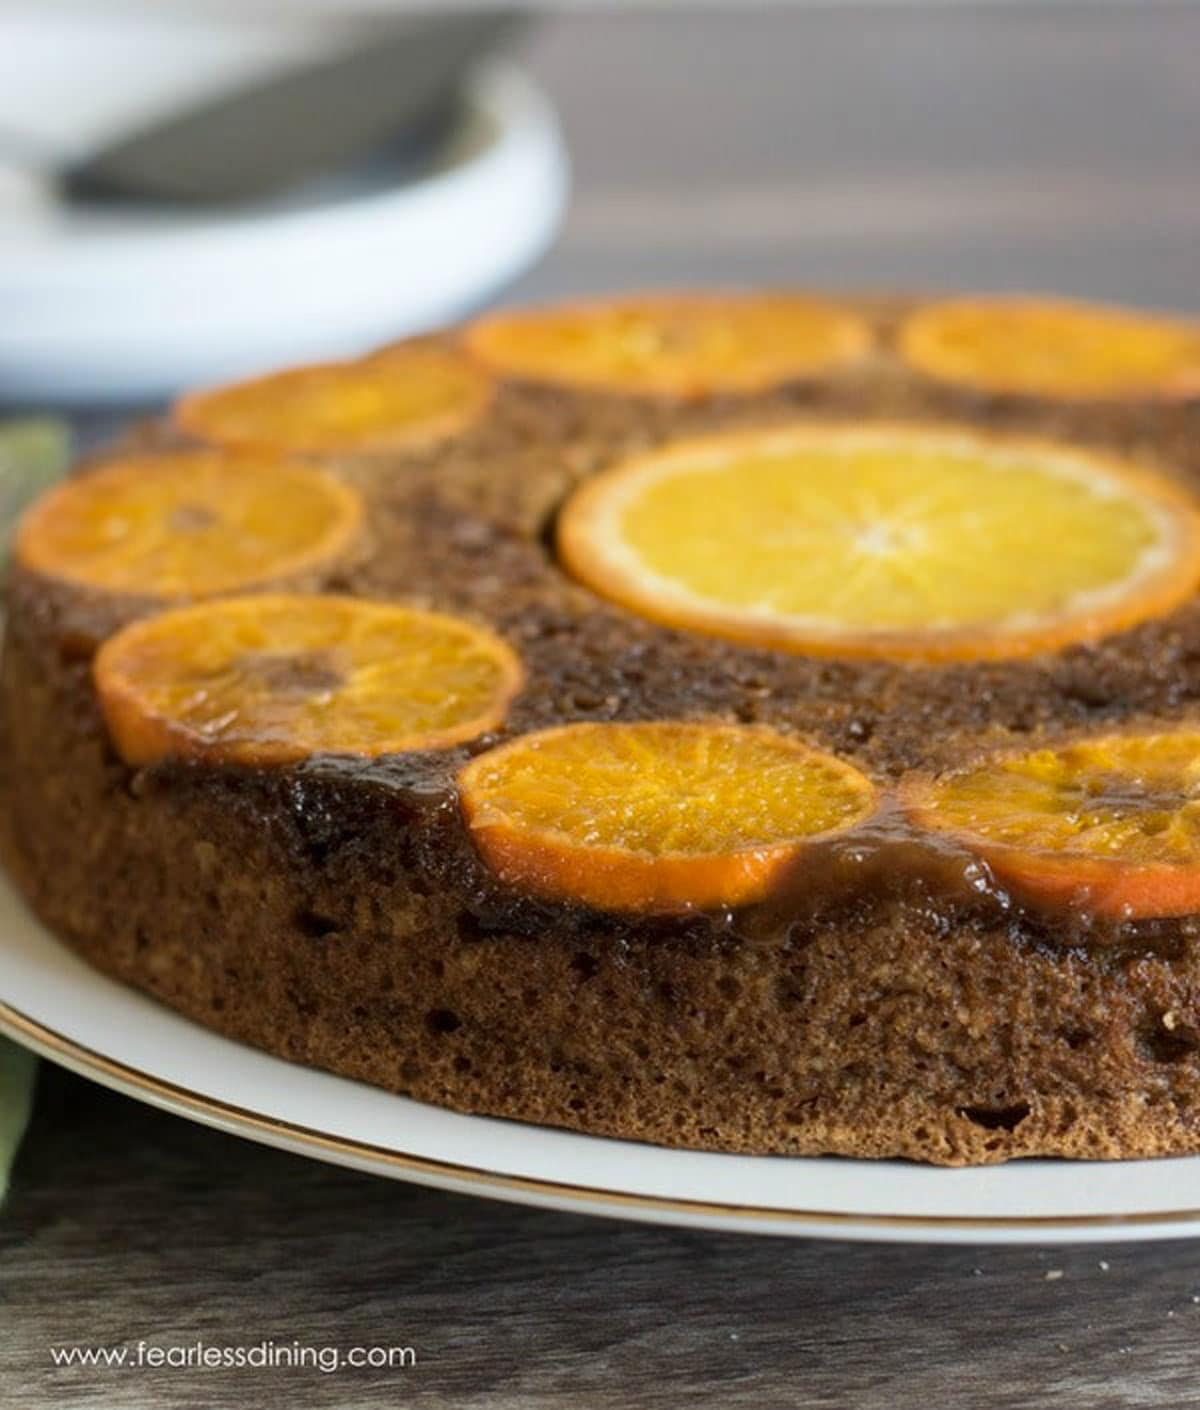 a close up of the caramelized oranges on the upside down cake